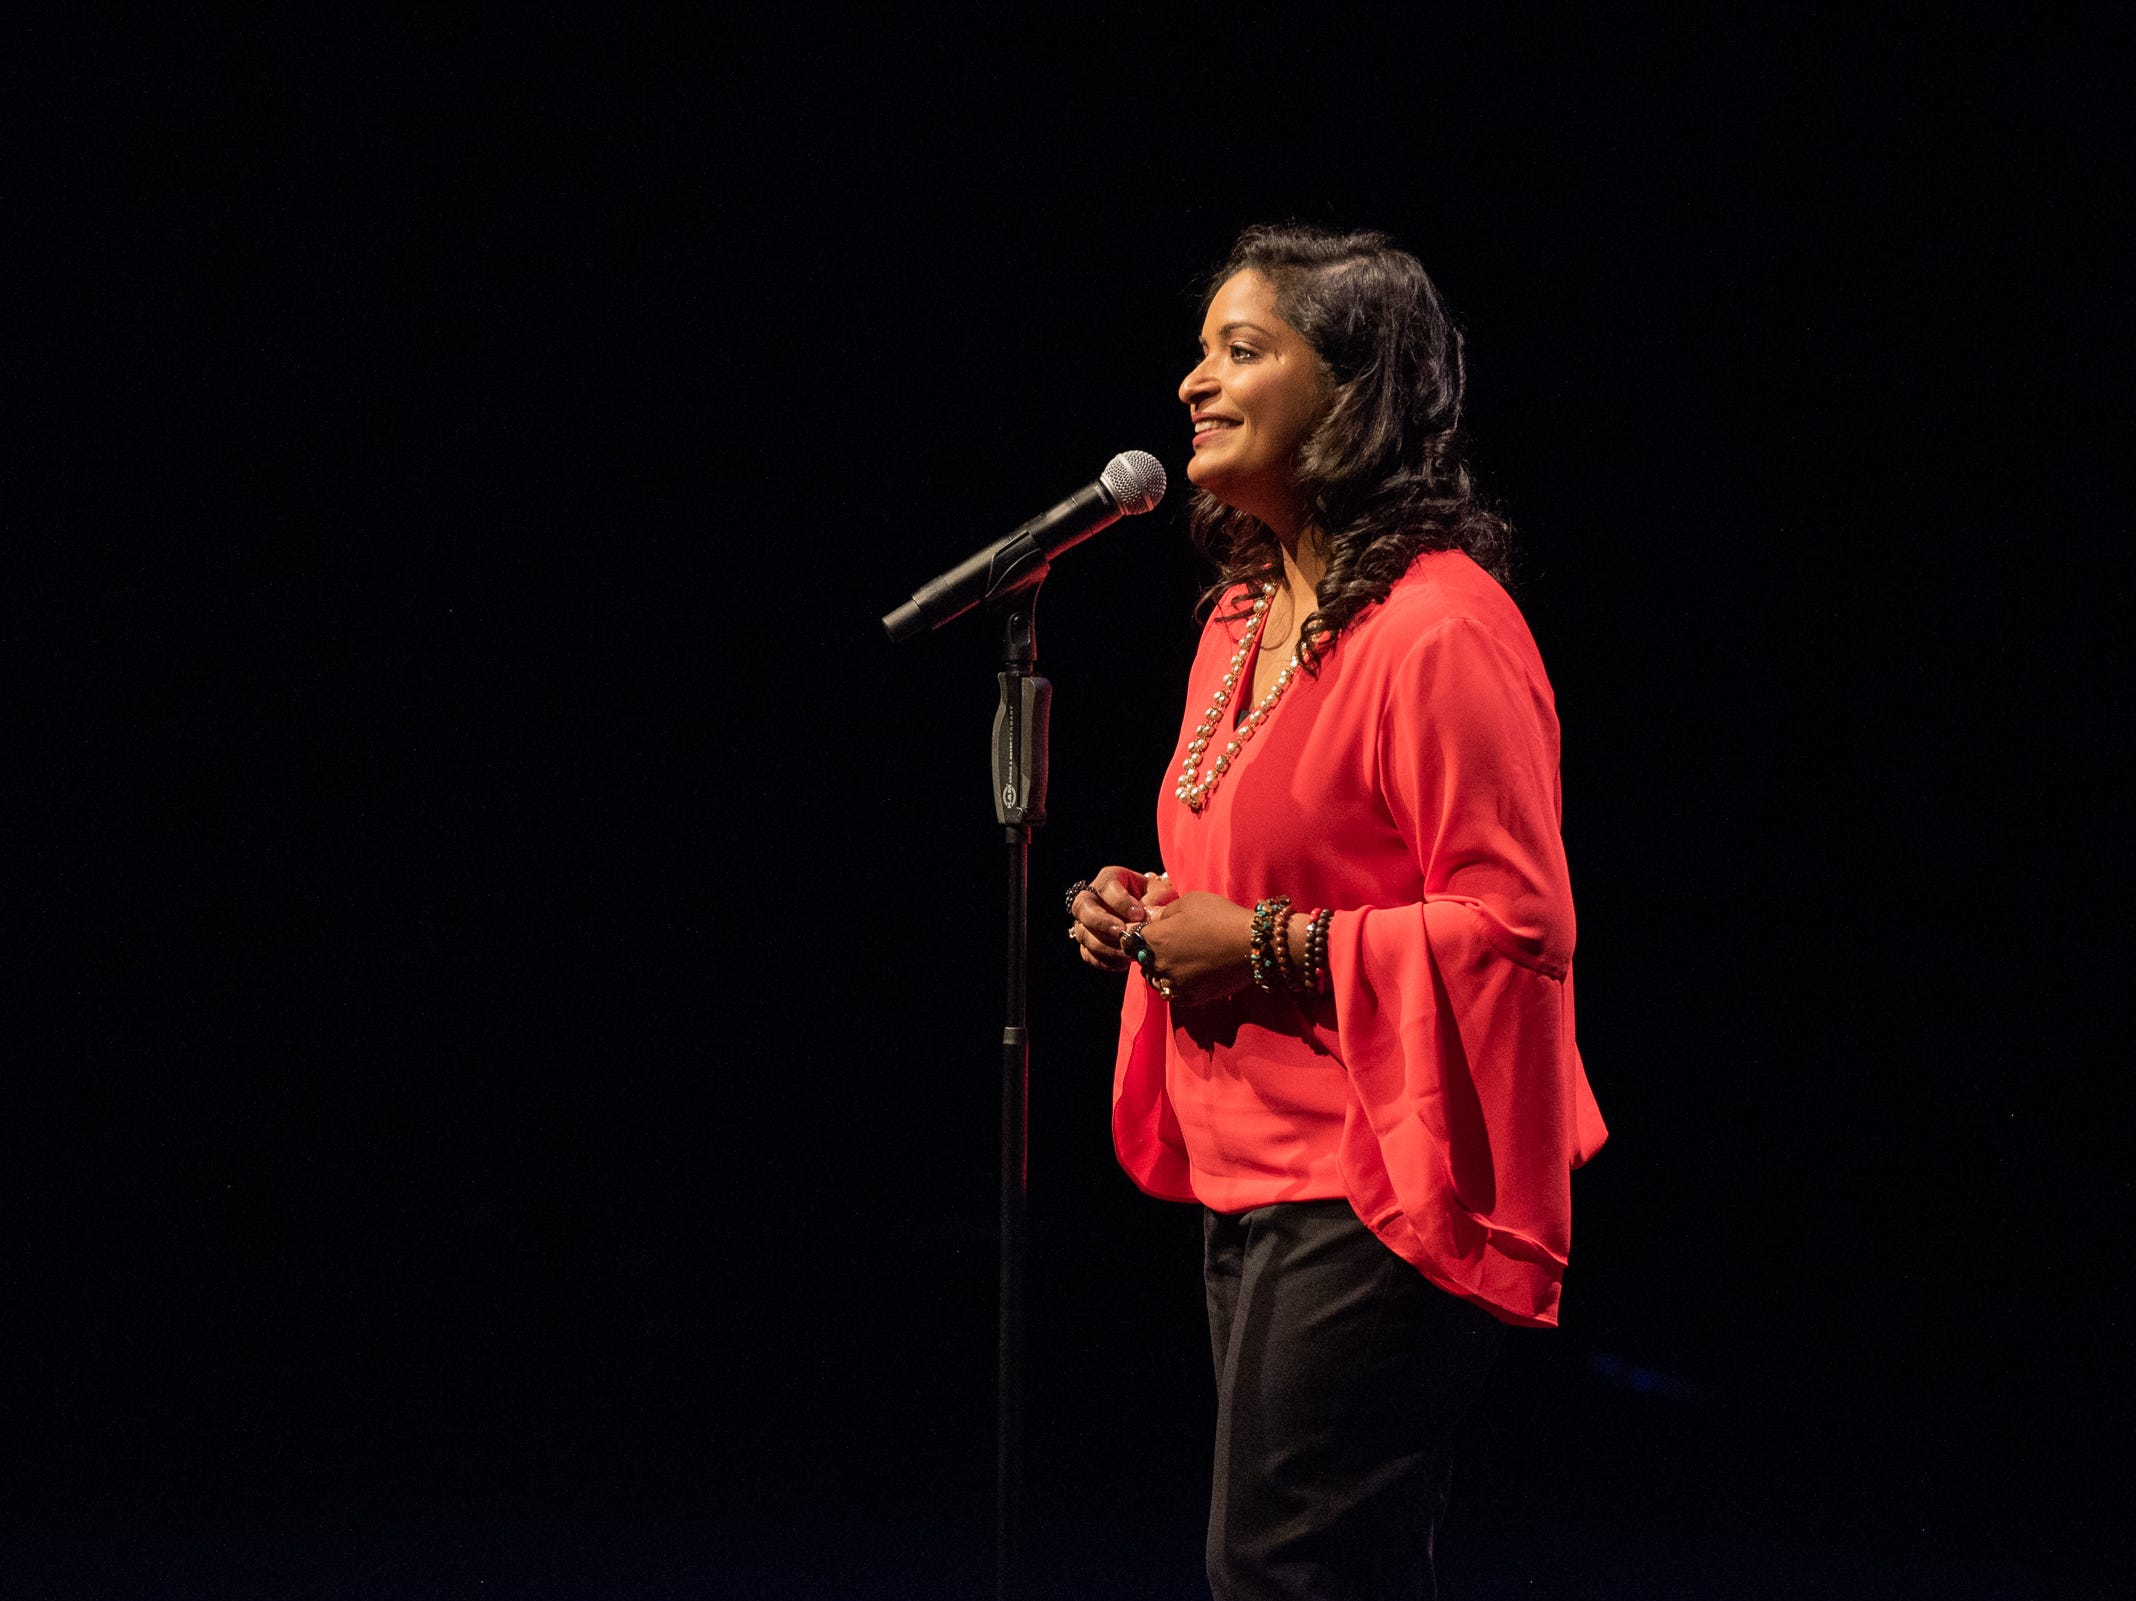 Parul Agrawal tells her tale during The Storytellers Project presents Romance - or Not at the Scottsdale Center for Performing Arts on Wednesday, Feb. 13, 2019.